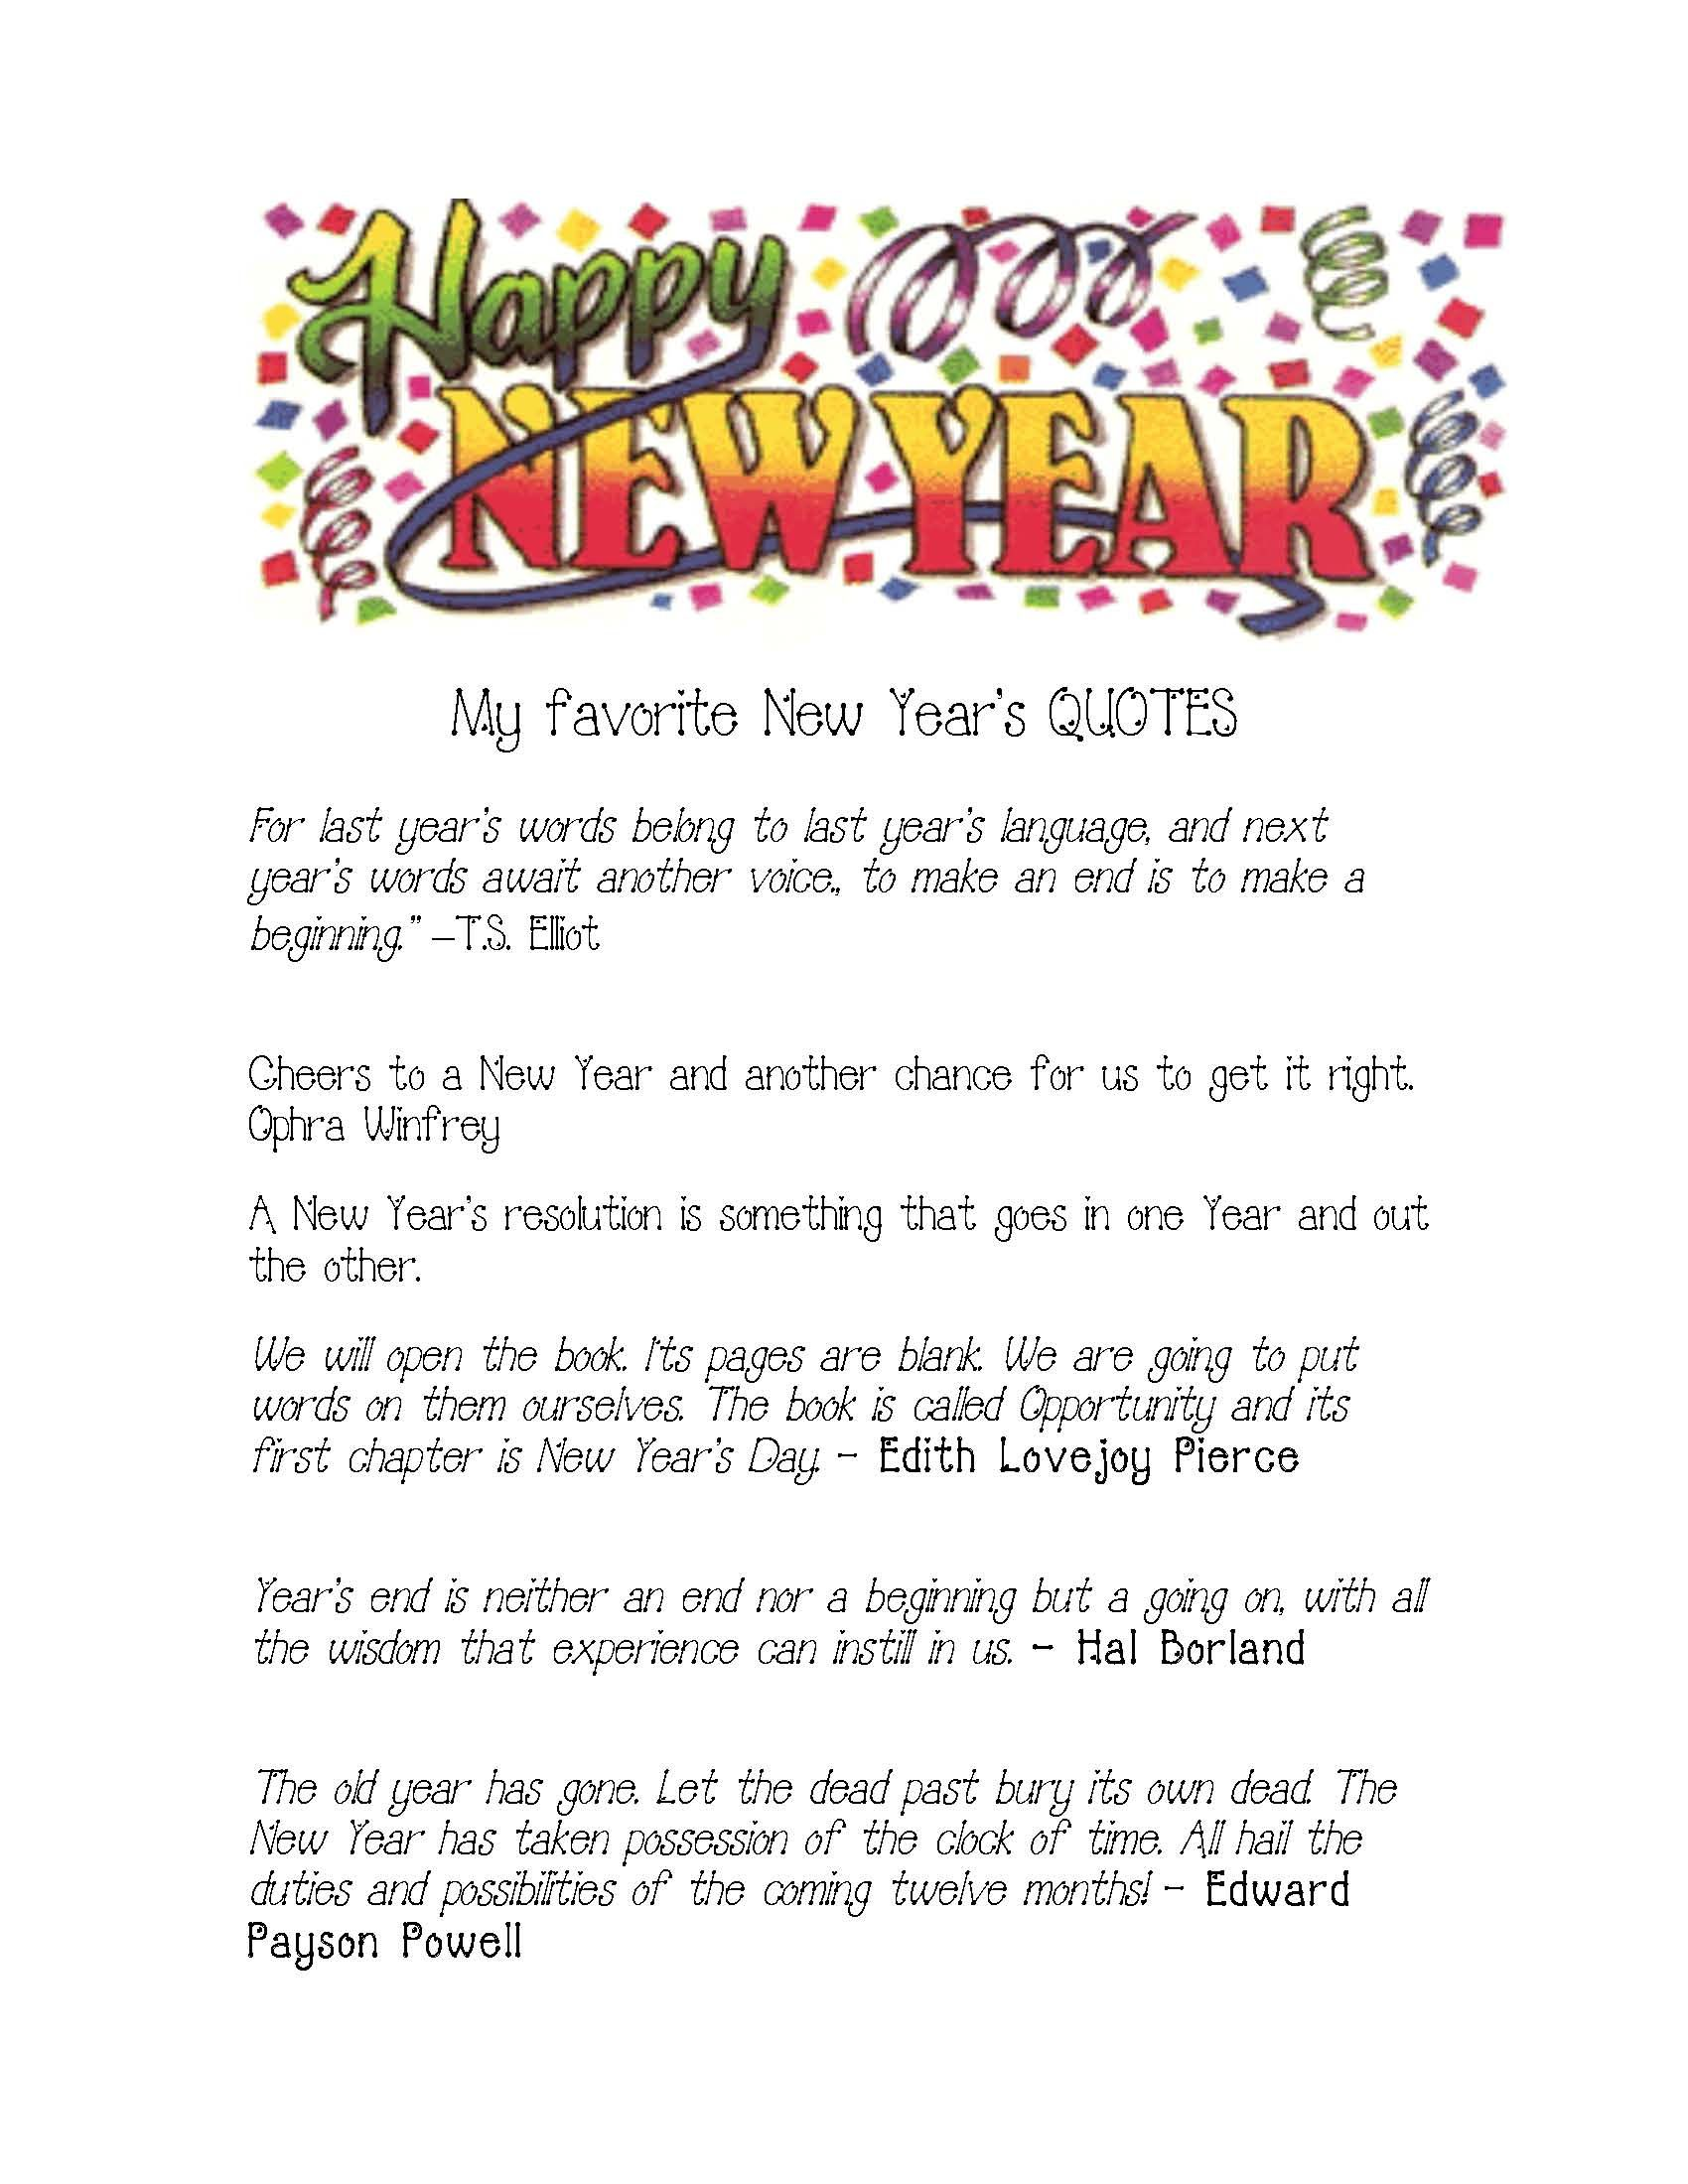 Happy New Year Quotes | Quotes, Sayings & Words | Pinterest | Thoughts